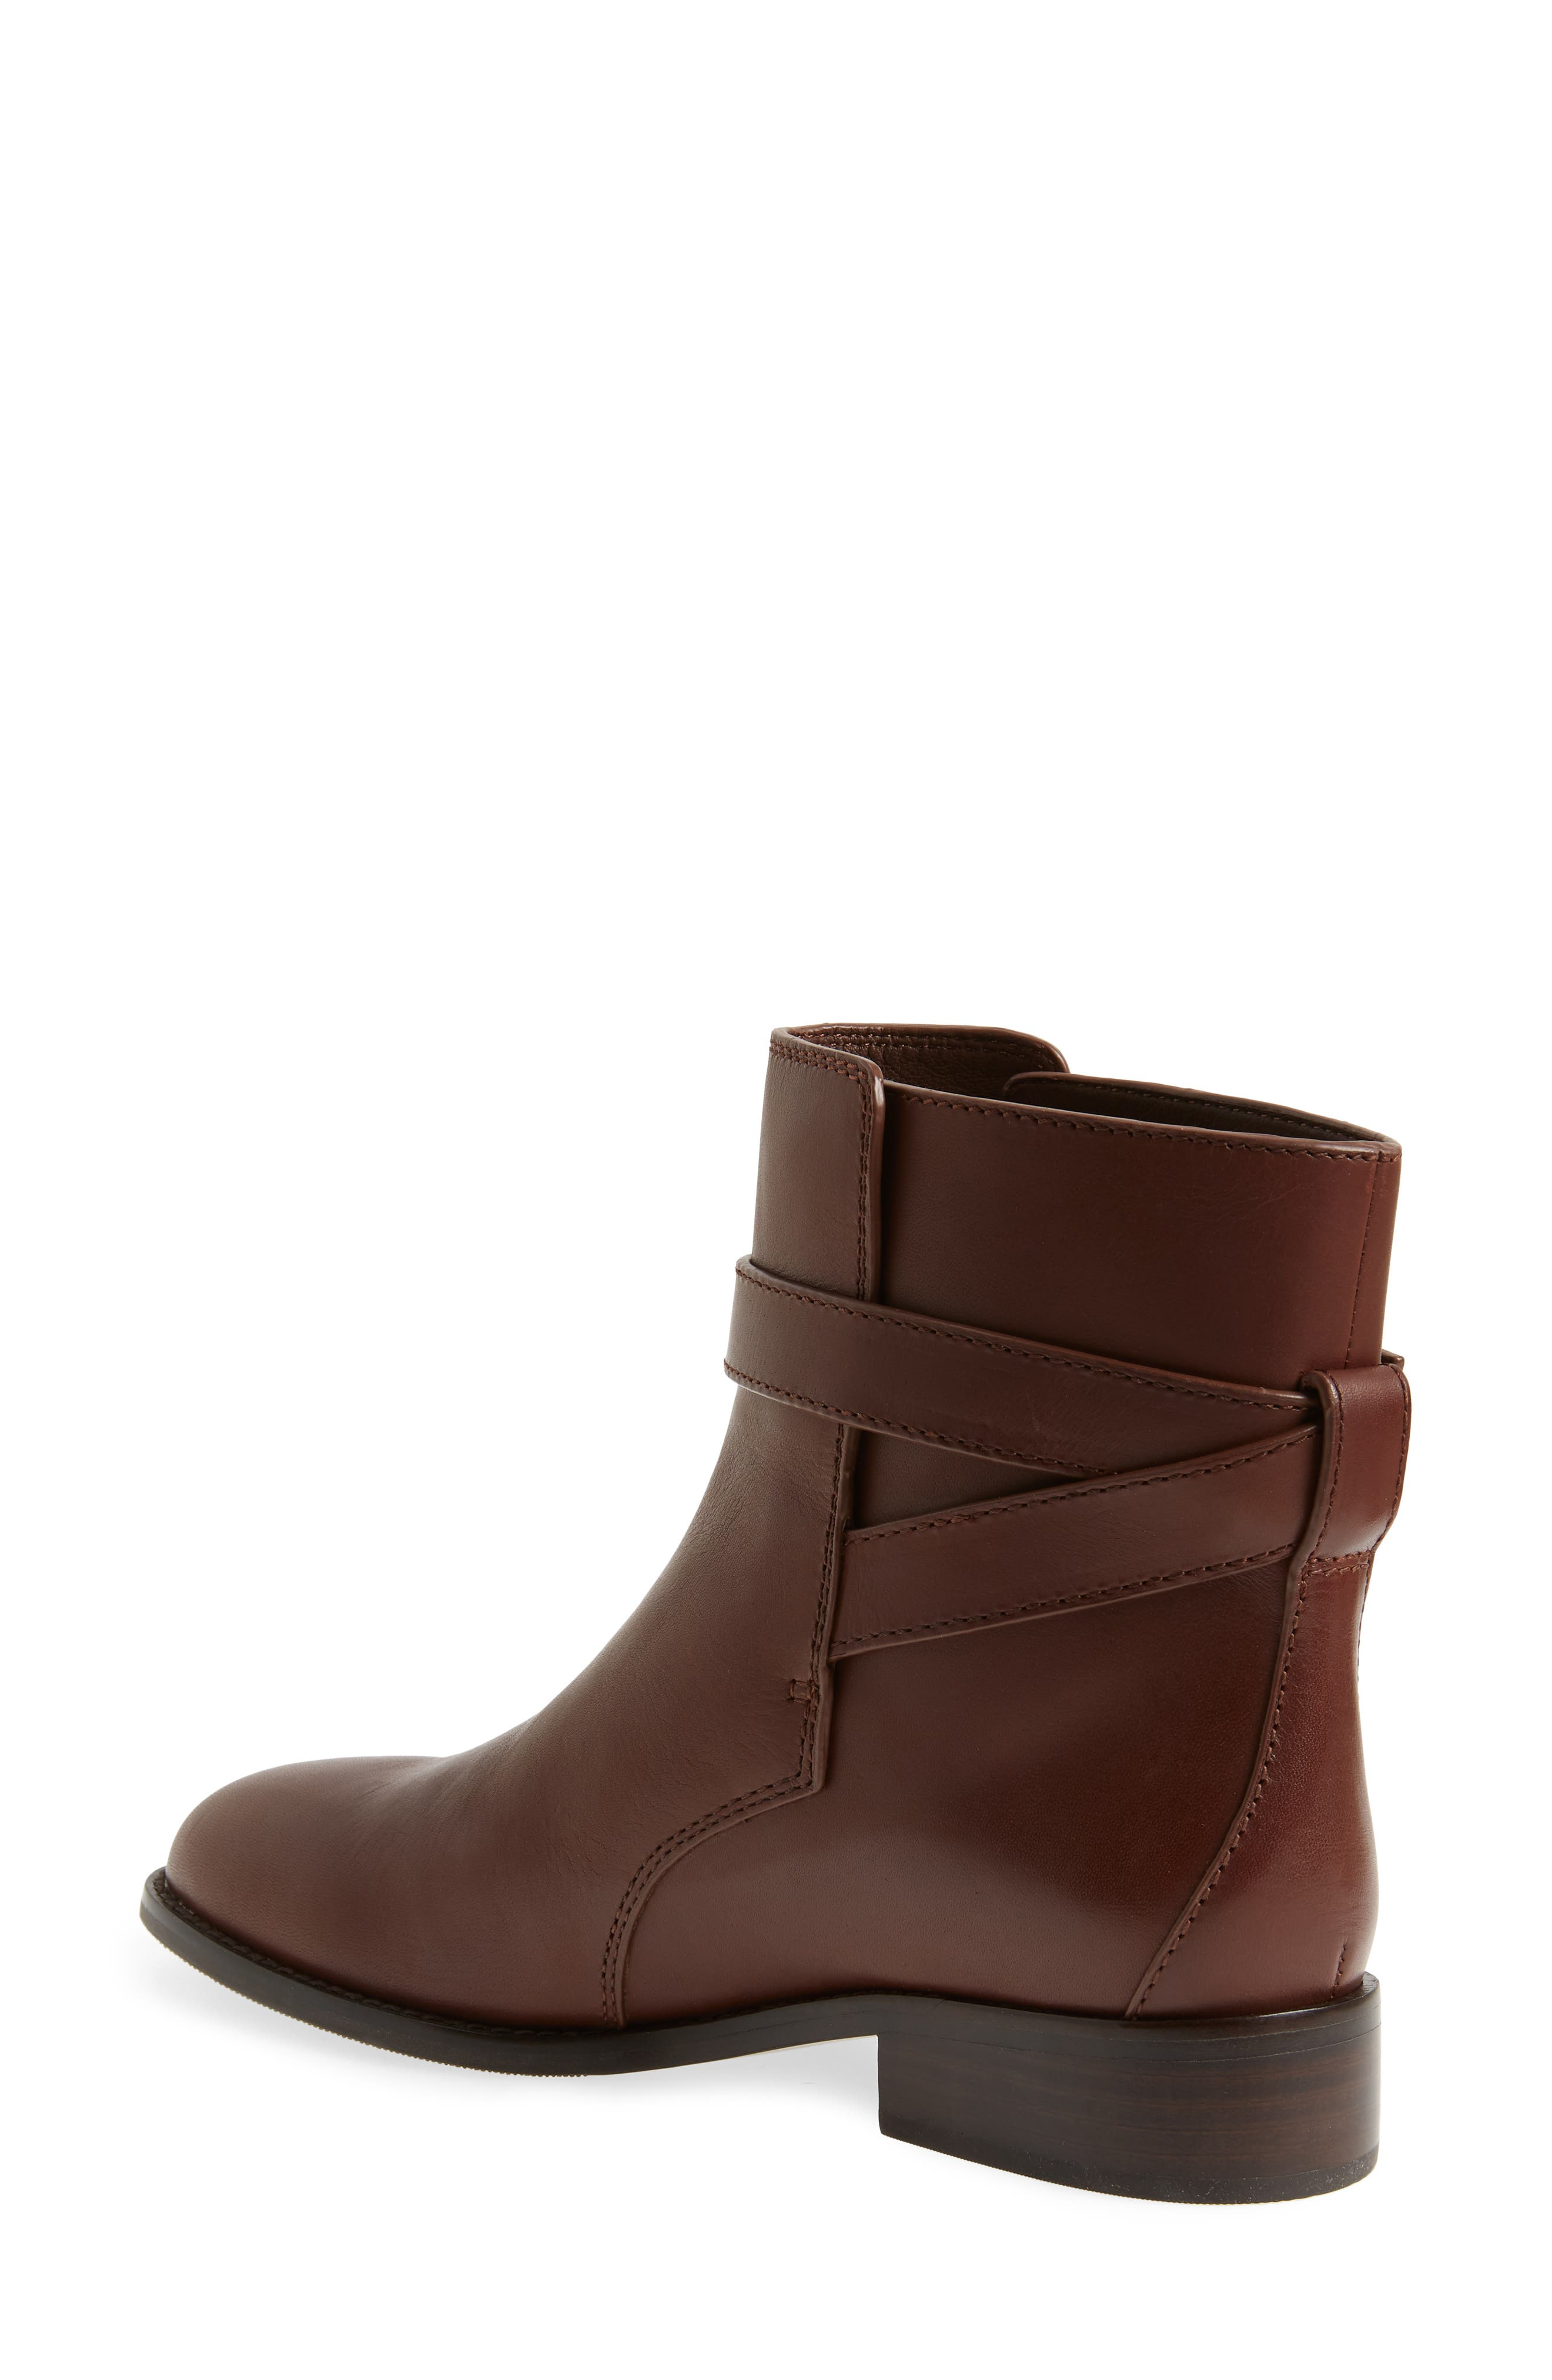 TORY BURCH, Brooke Bootie, Alternate thumbnail 2, color, 200